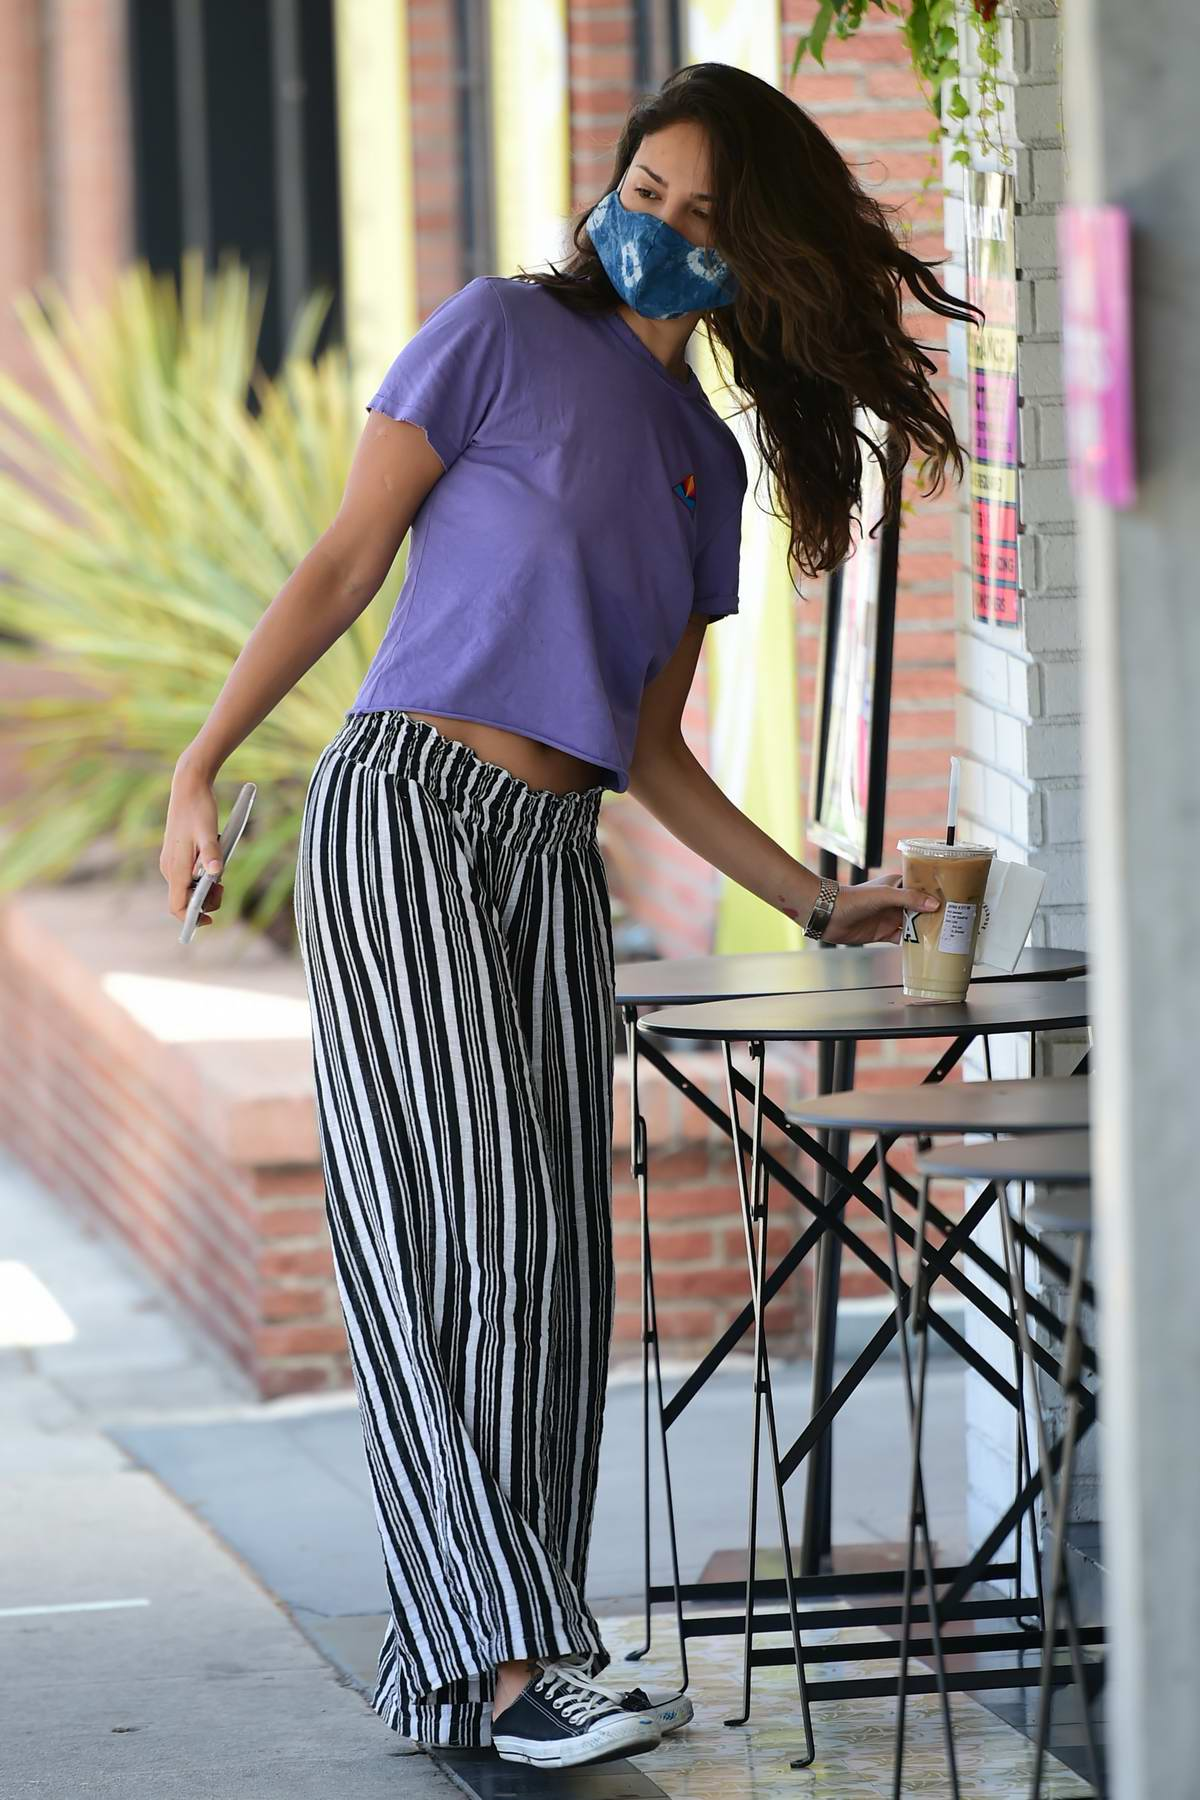 Eiza Gonzales wears purple top with striped pants as she steps out for a coffee at Alfred's in Los Angeles